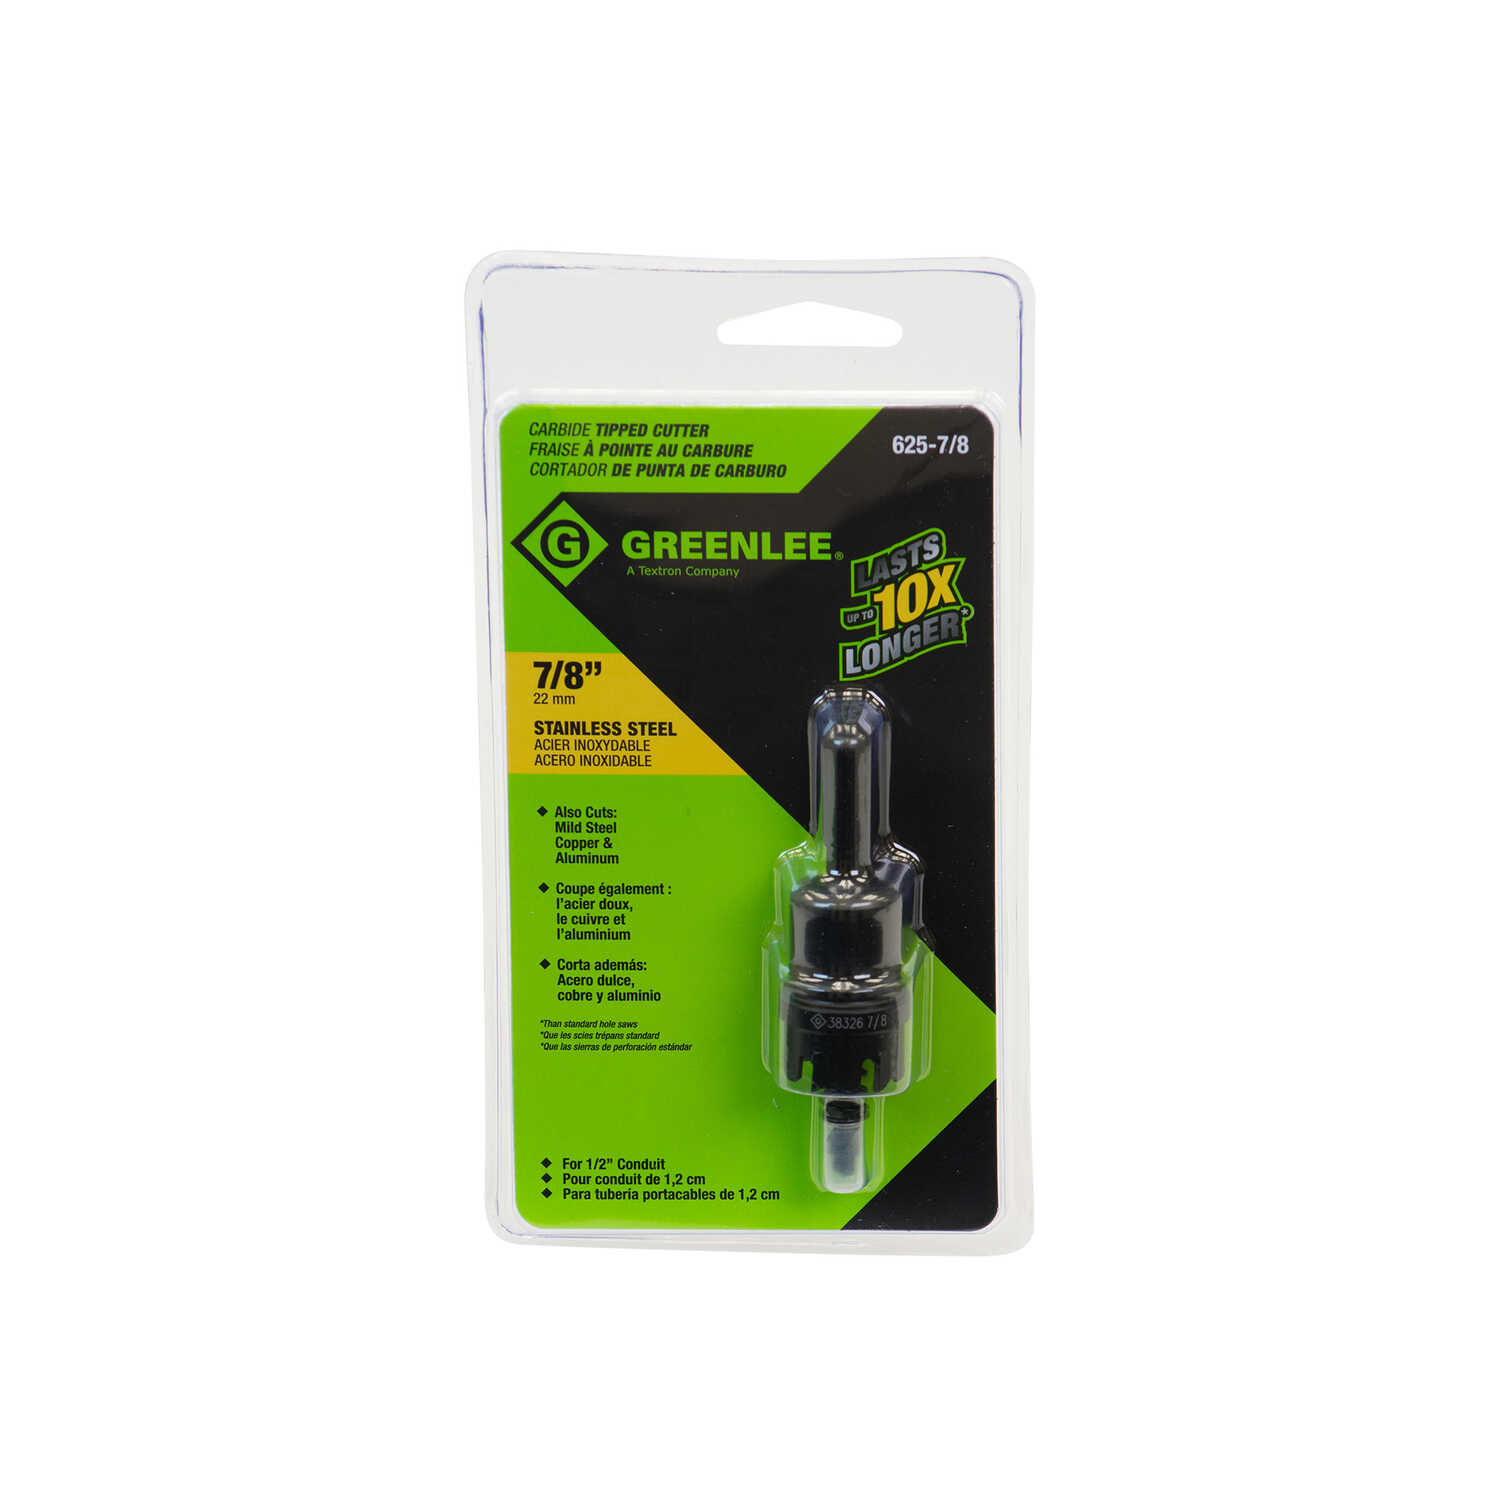 Greenlee  7/8 in. Dia. x 2 in. L Carbide Tipped  Hole Cutter  1 pc.